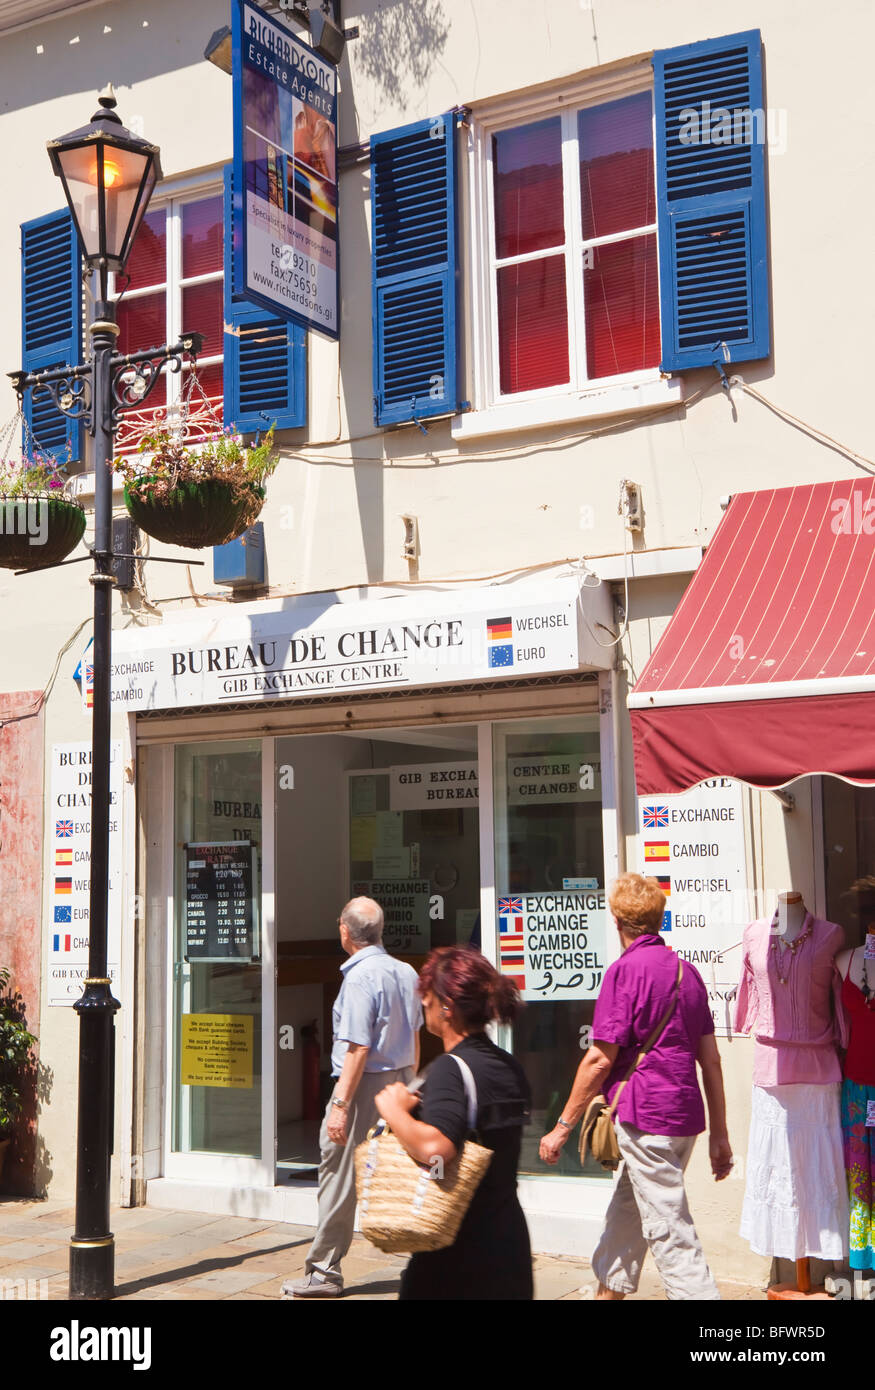 Gibraltar. Bureau de Change on Main Street. - Stock Image